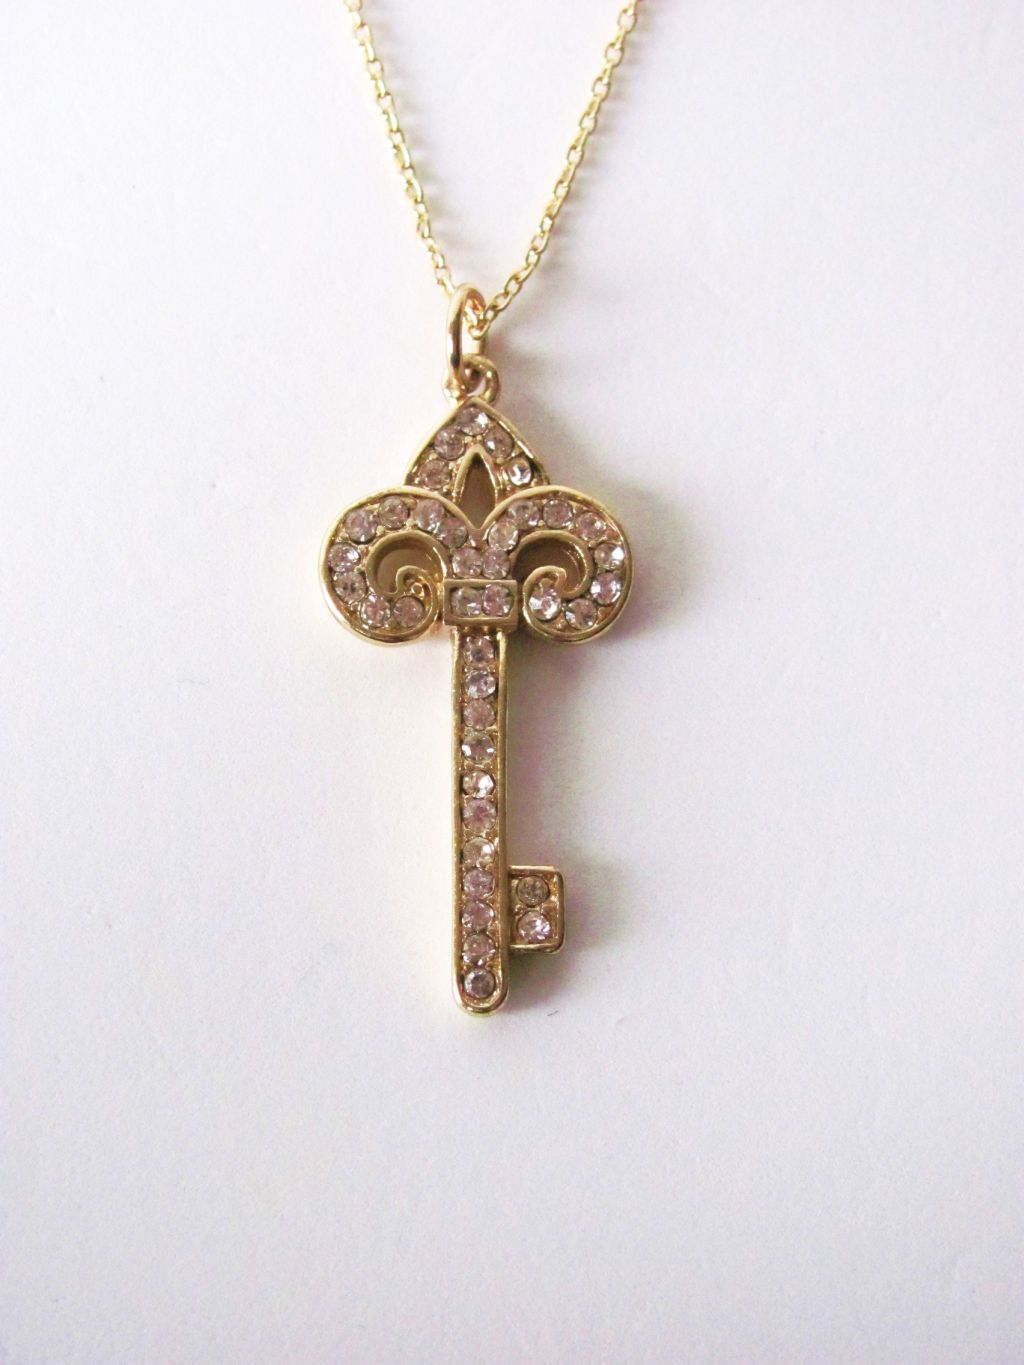 Designer's Touch Key Pendant CZ Stones Chain Necklace Gold Tone